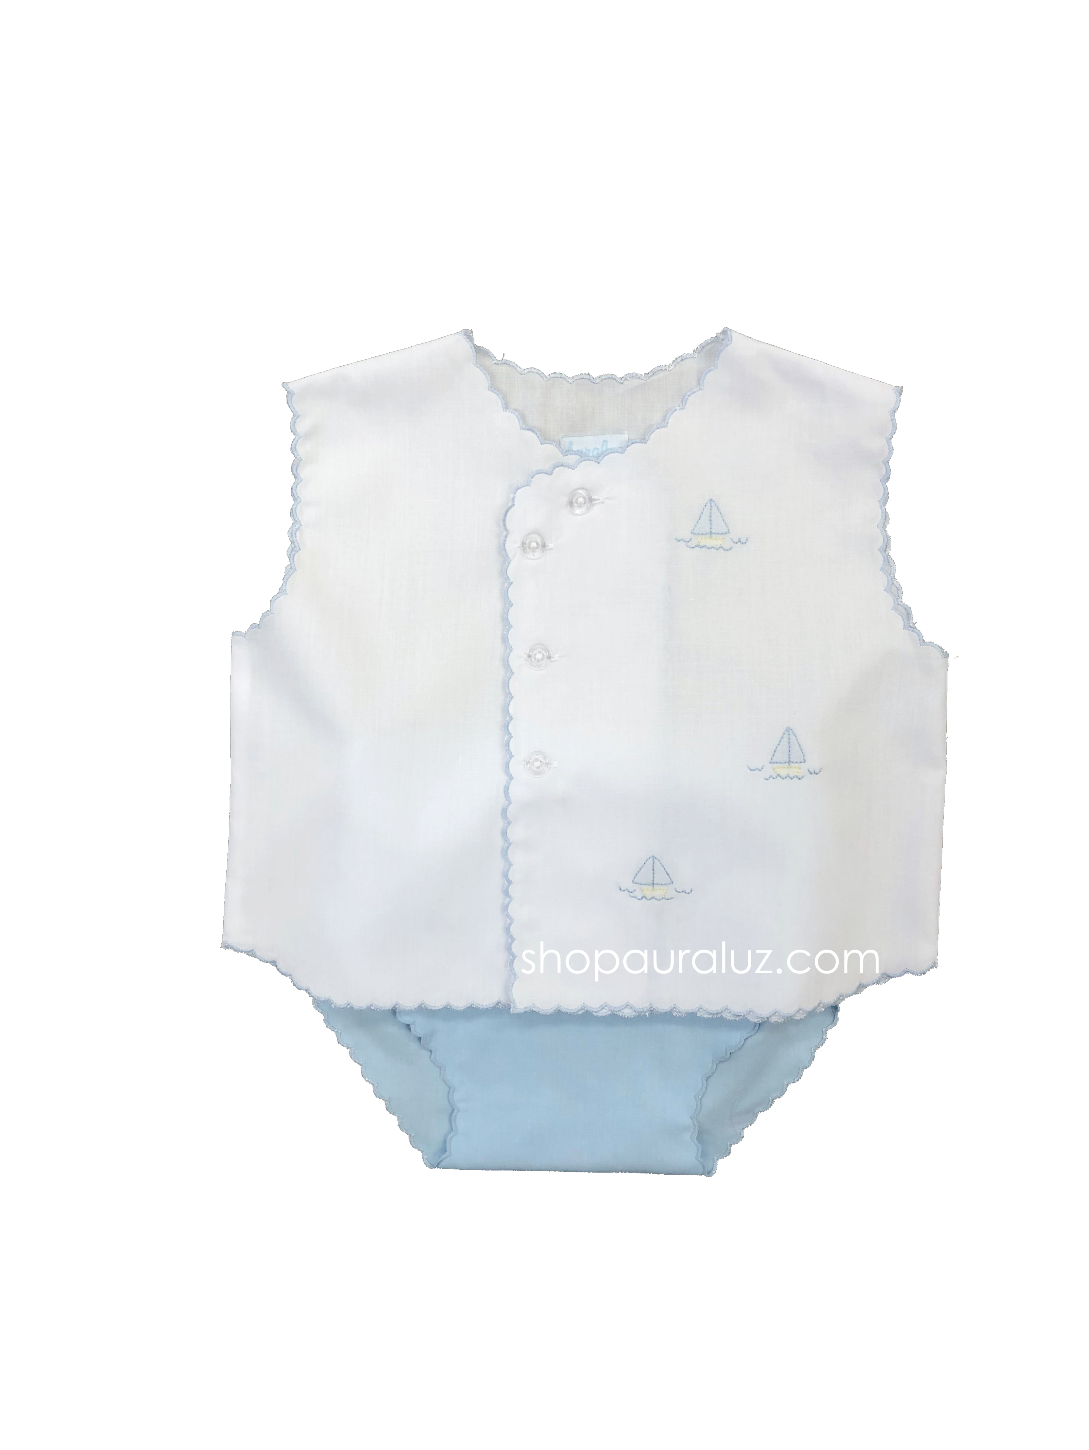 Auraluz Sleeveless Diaper shirt/cover set...White with blue scallops(blue diaper cover) and embroidered boats